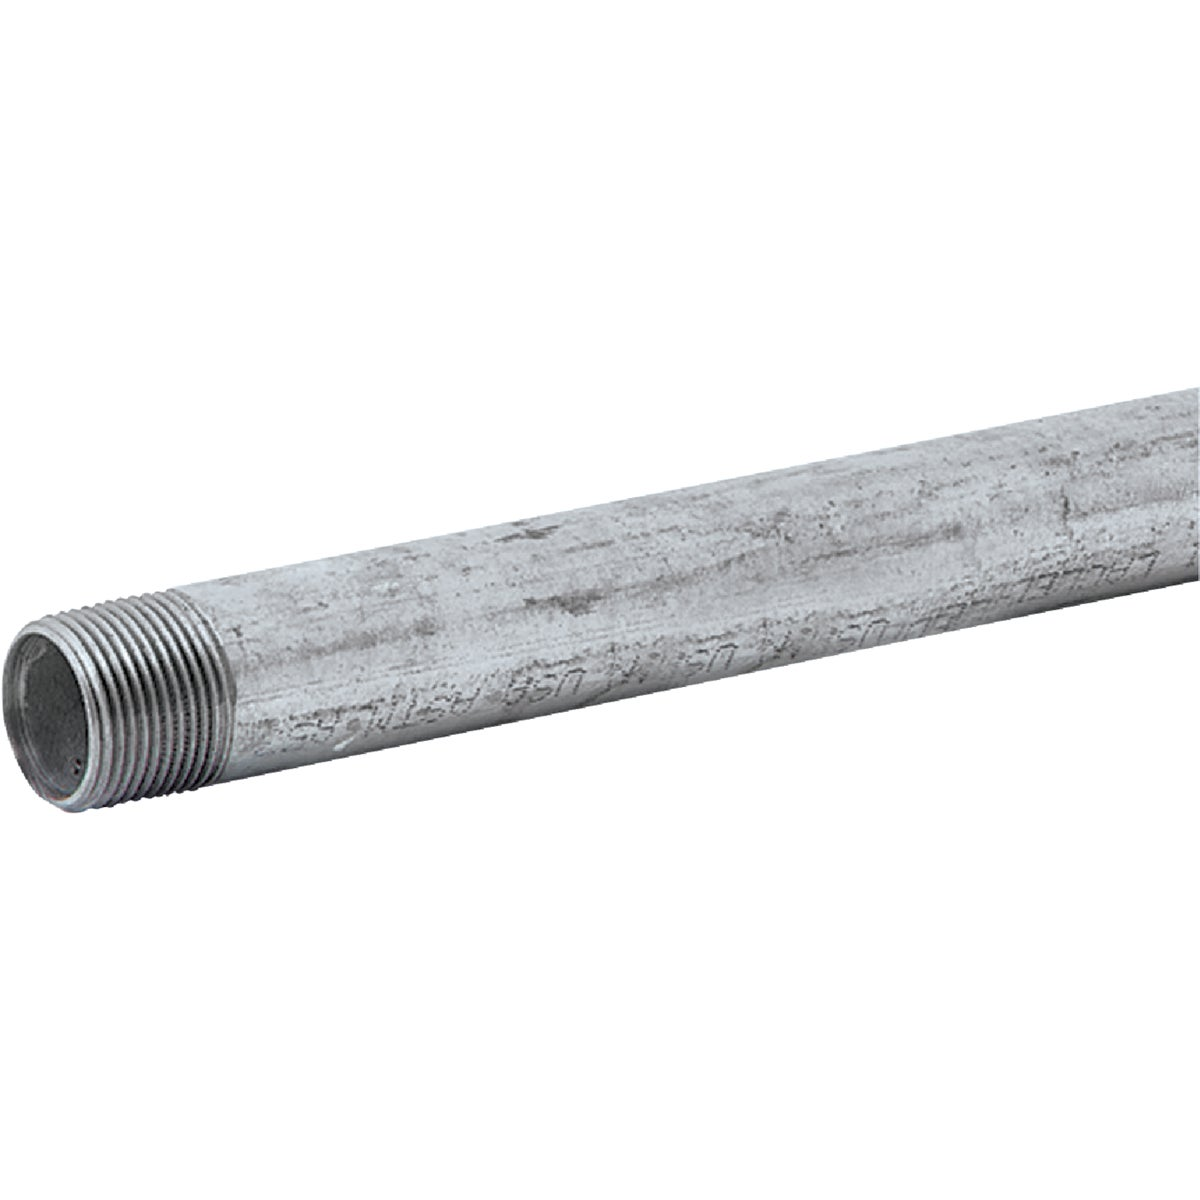 "1-1/2""X10' GALV PIPE - 10824 by Southland Pipe"